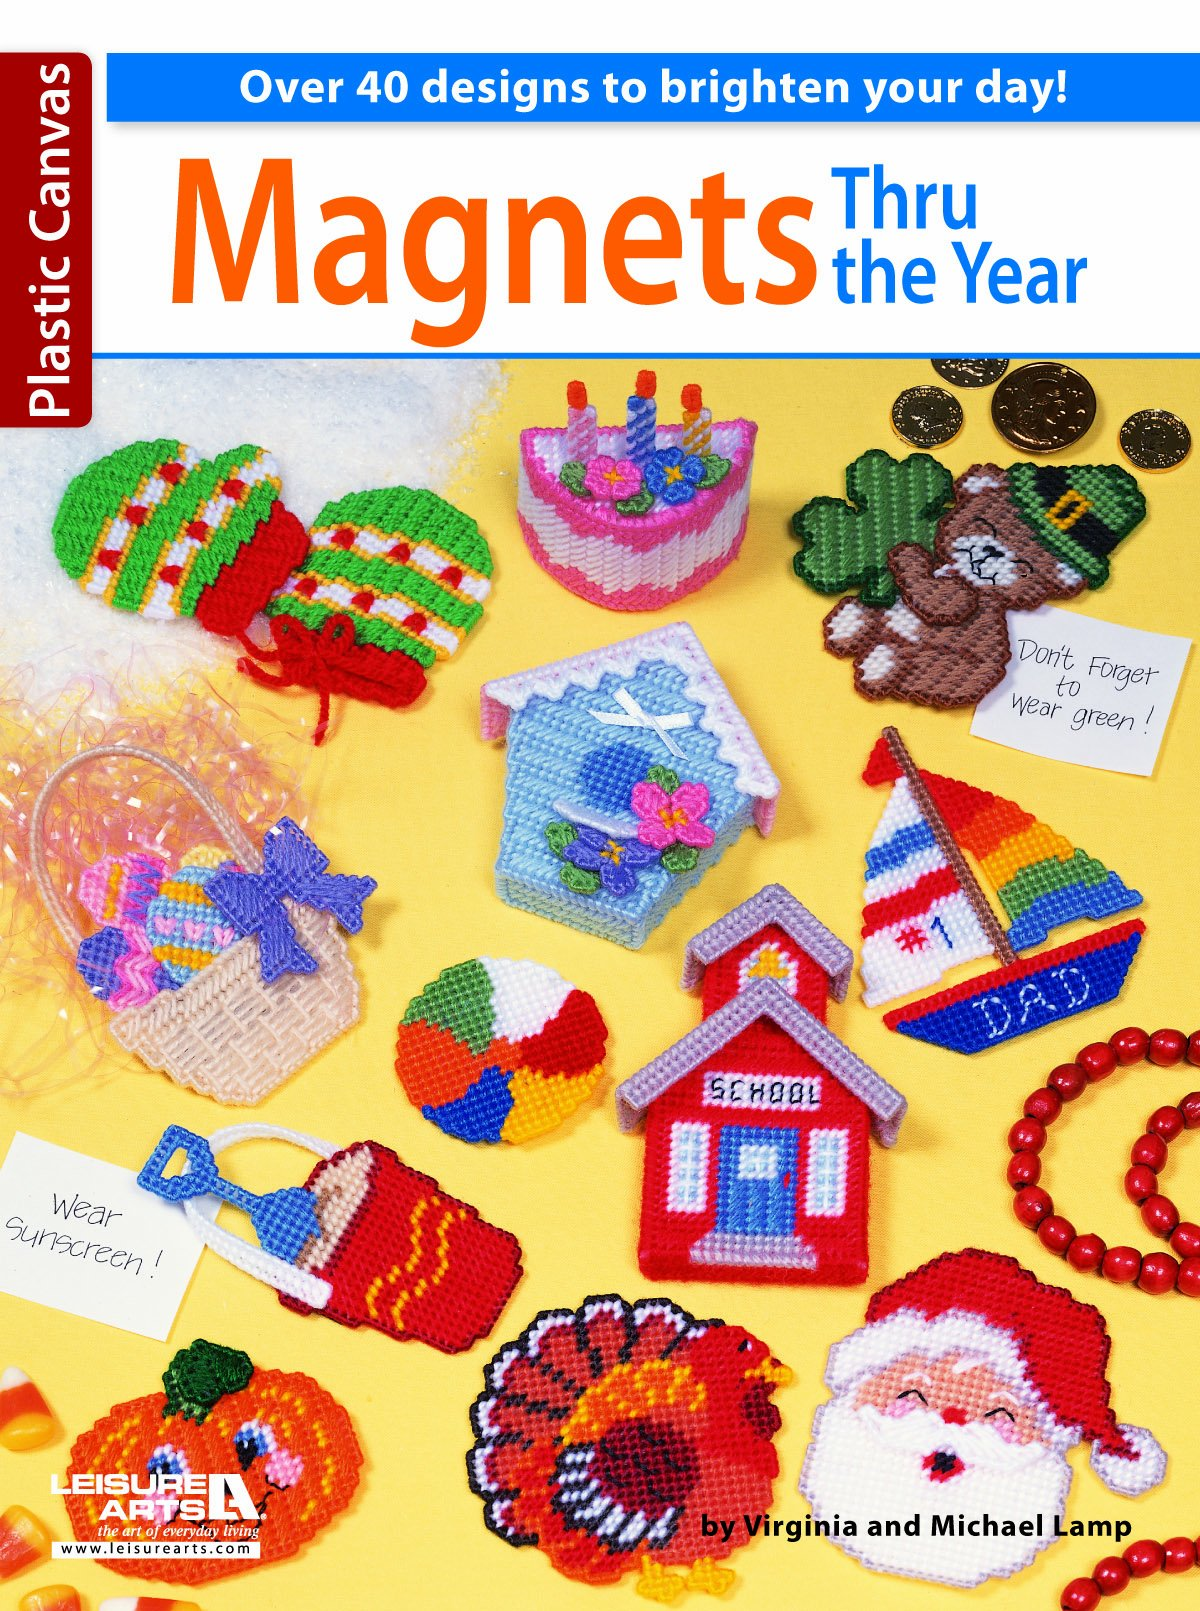 magnets-thru-the-year